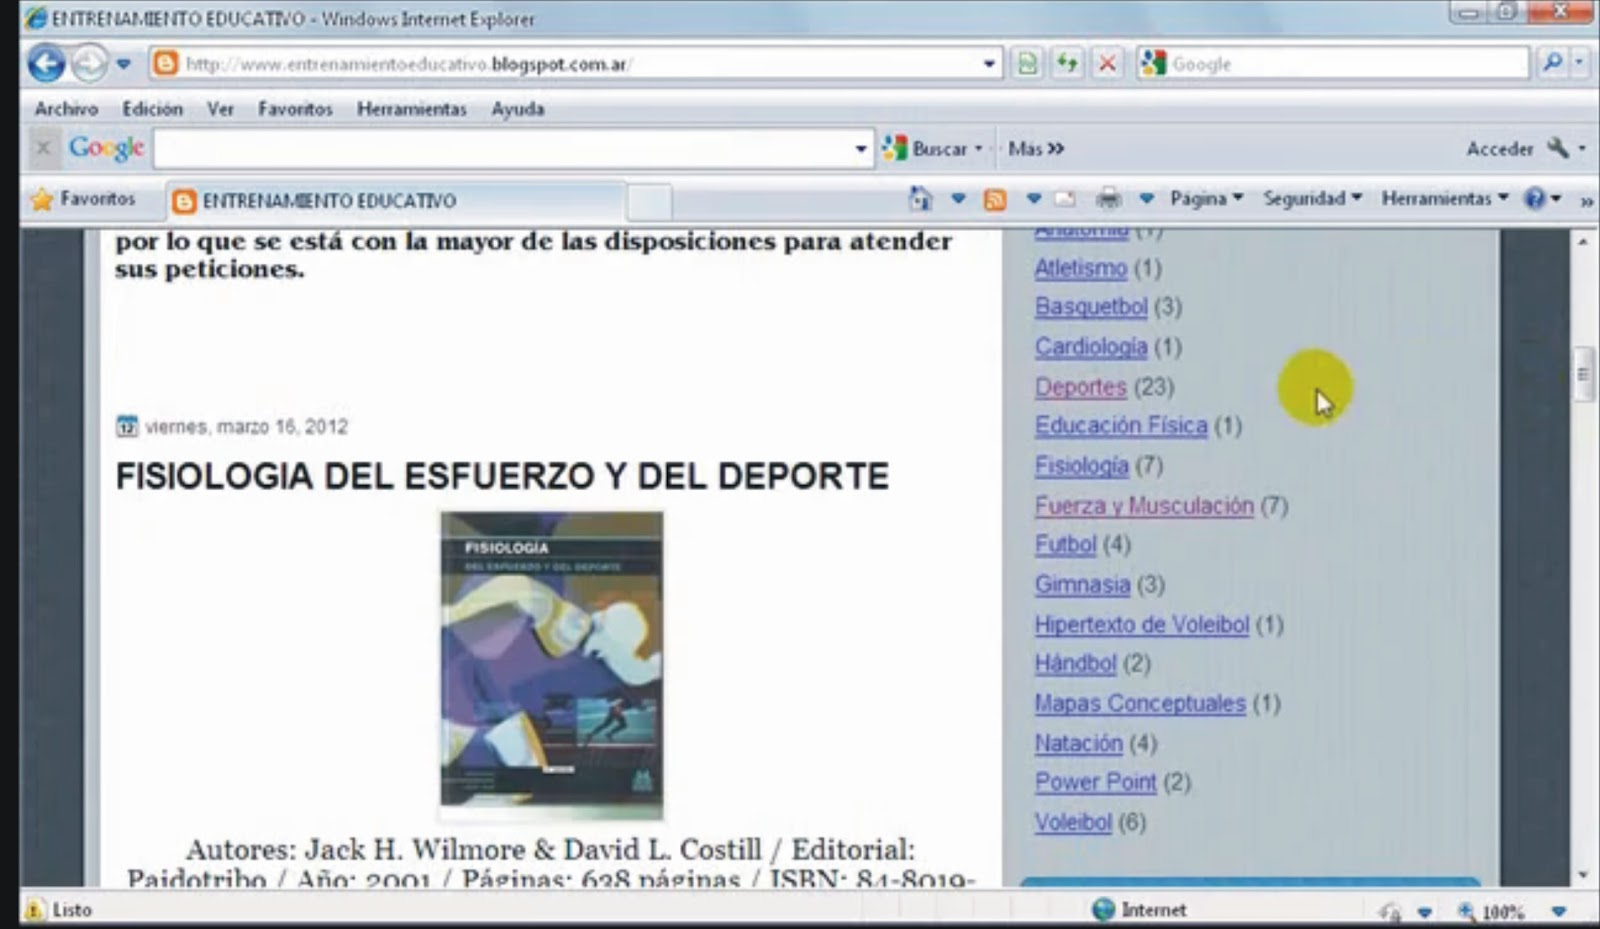 Blog De Descarga De Libros Video Tutorial De Como Bajar Un Libro De Mi Blog